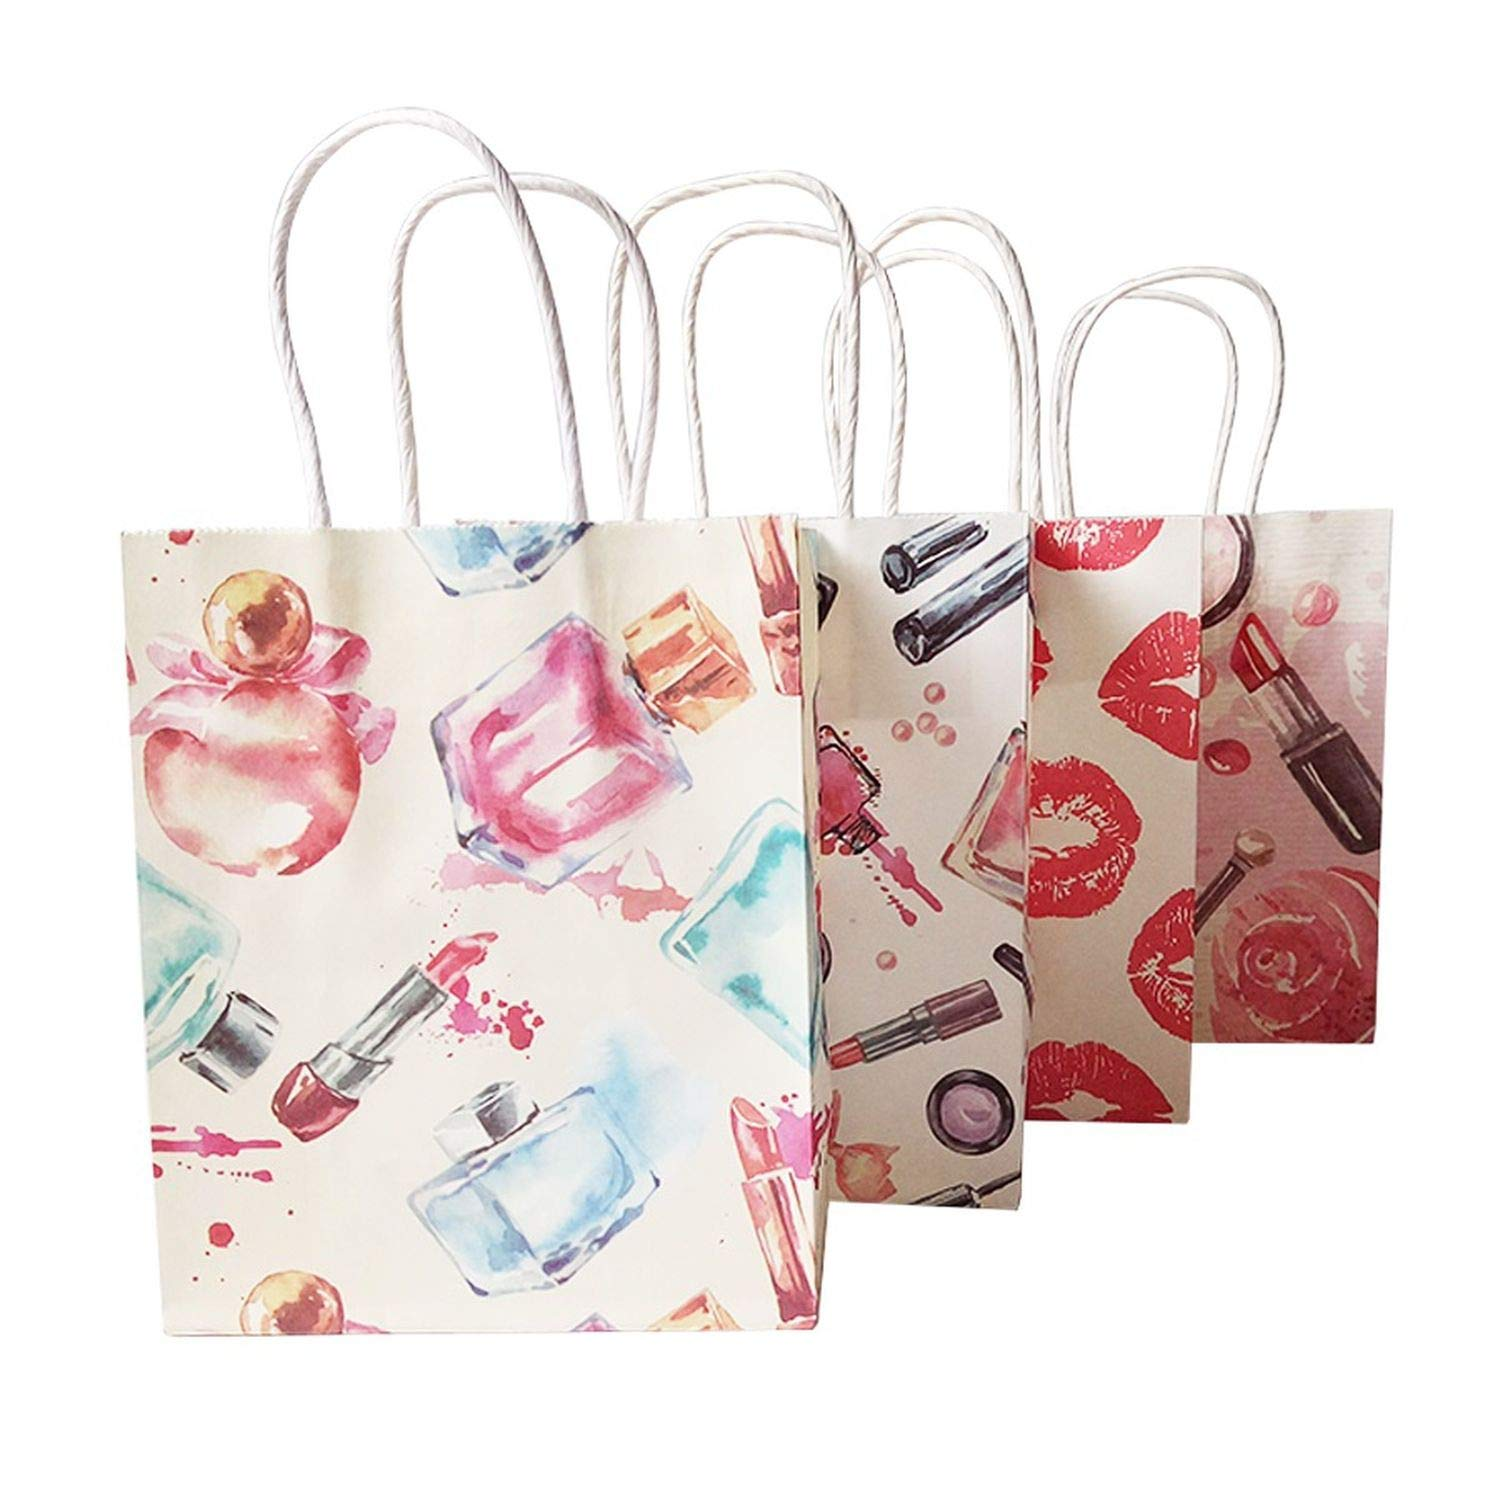 50 Pcs/Lot 15x18 cm Cosmetic Pattern Printing Paper Bags with Handle Gift Bags Party Favor Wedding Packaging Storage Bags,Perfume by JIA-WALK (Image #4)